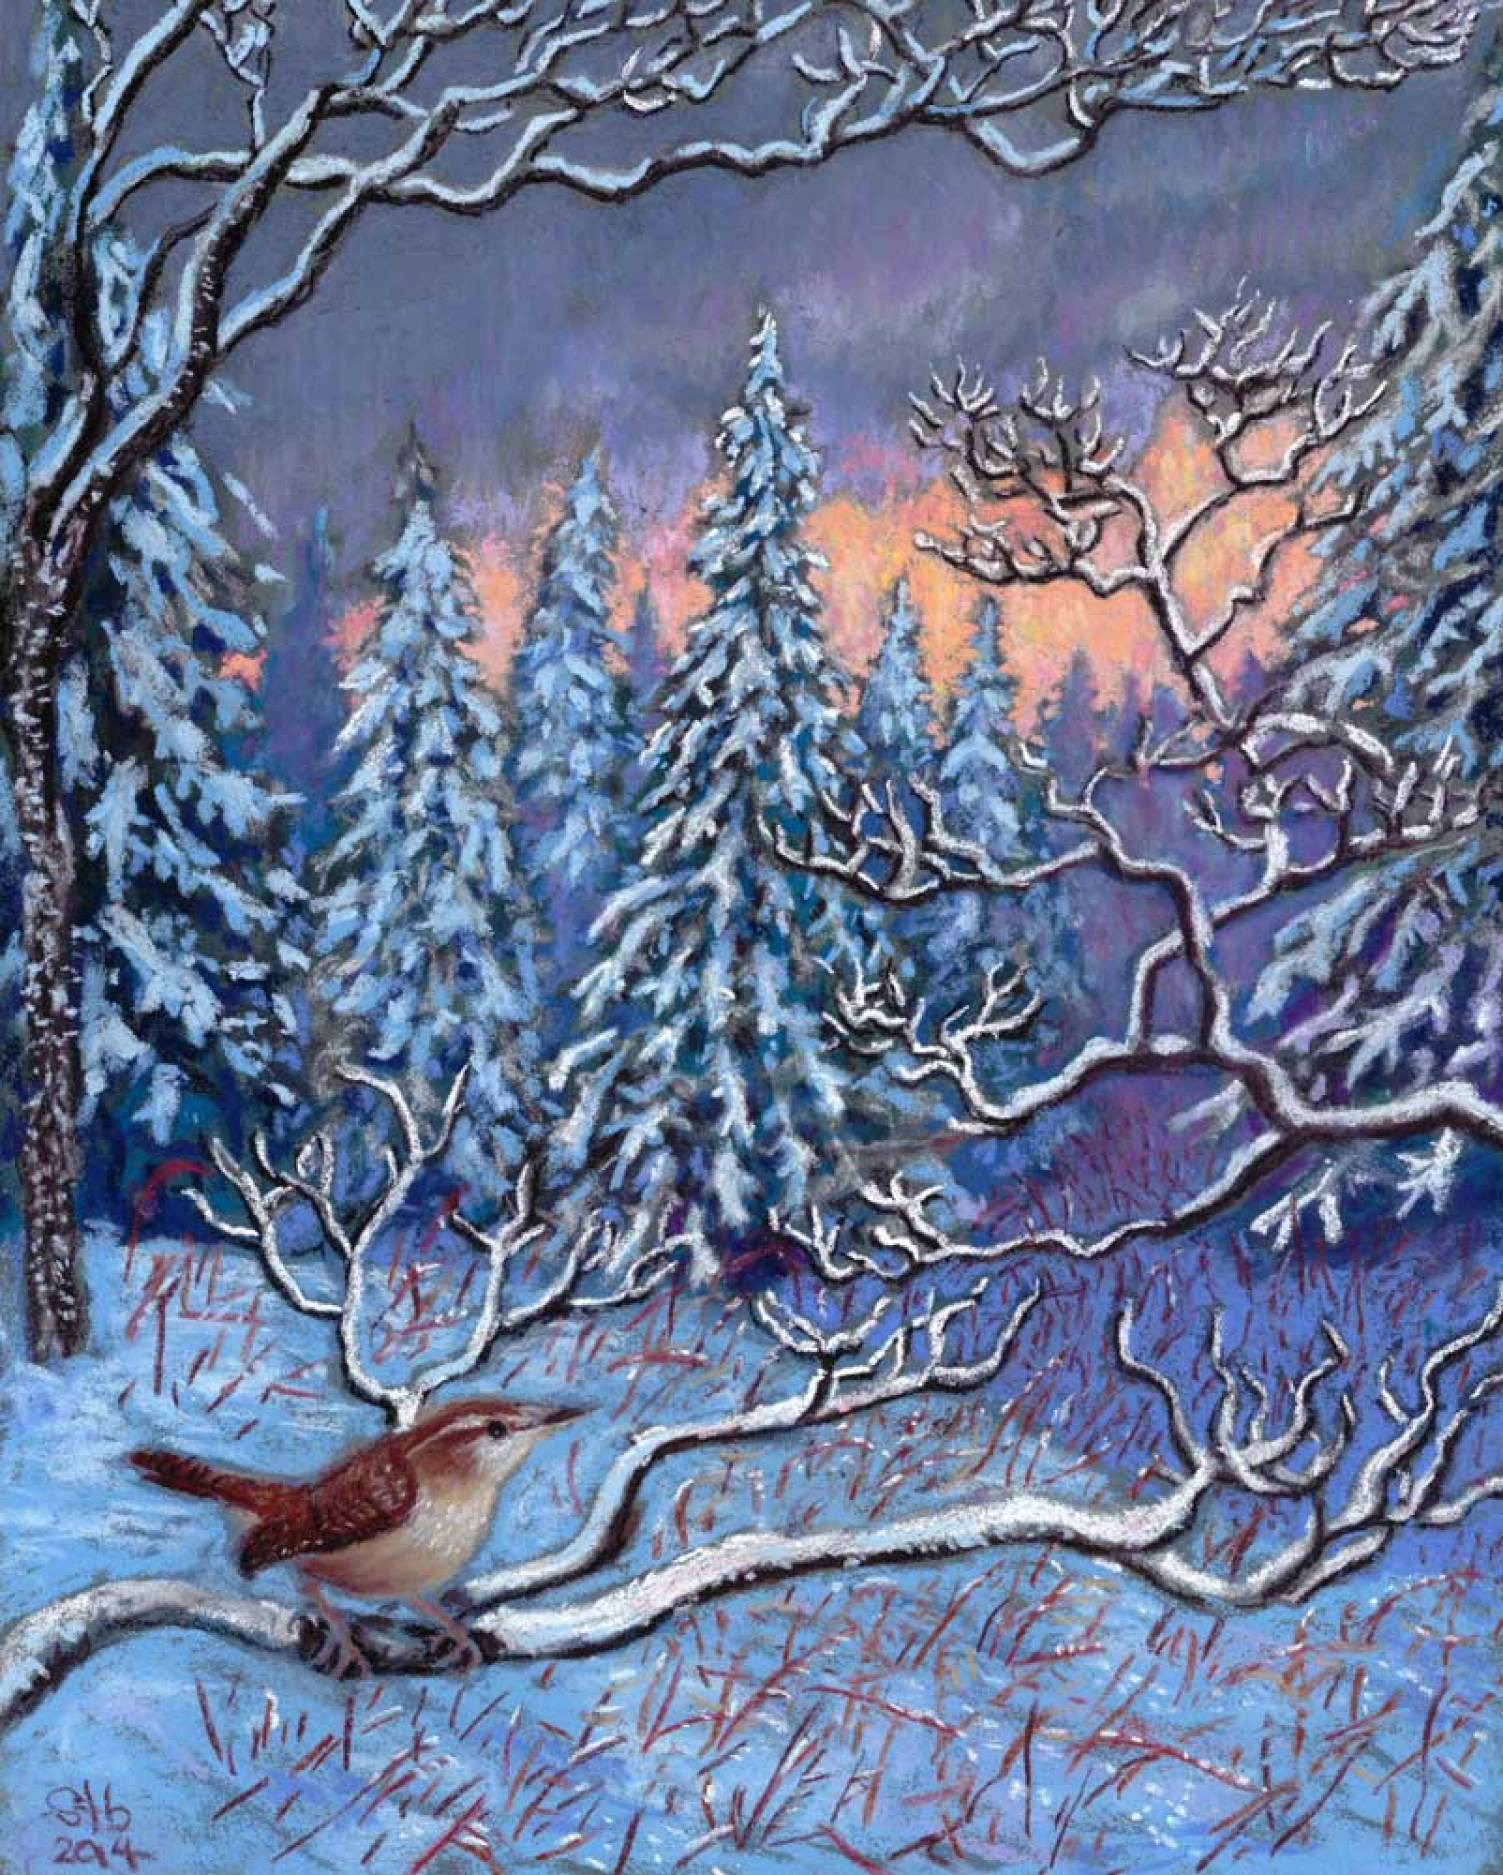 Innocence, a pastel by Stephanie Thomas Berry featuring a Carolina Wren surveying the sunrise on a snow-covered landscape